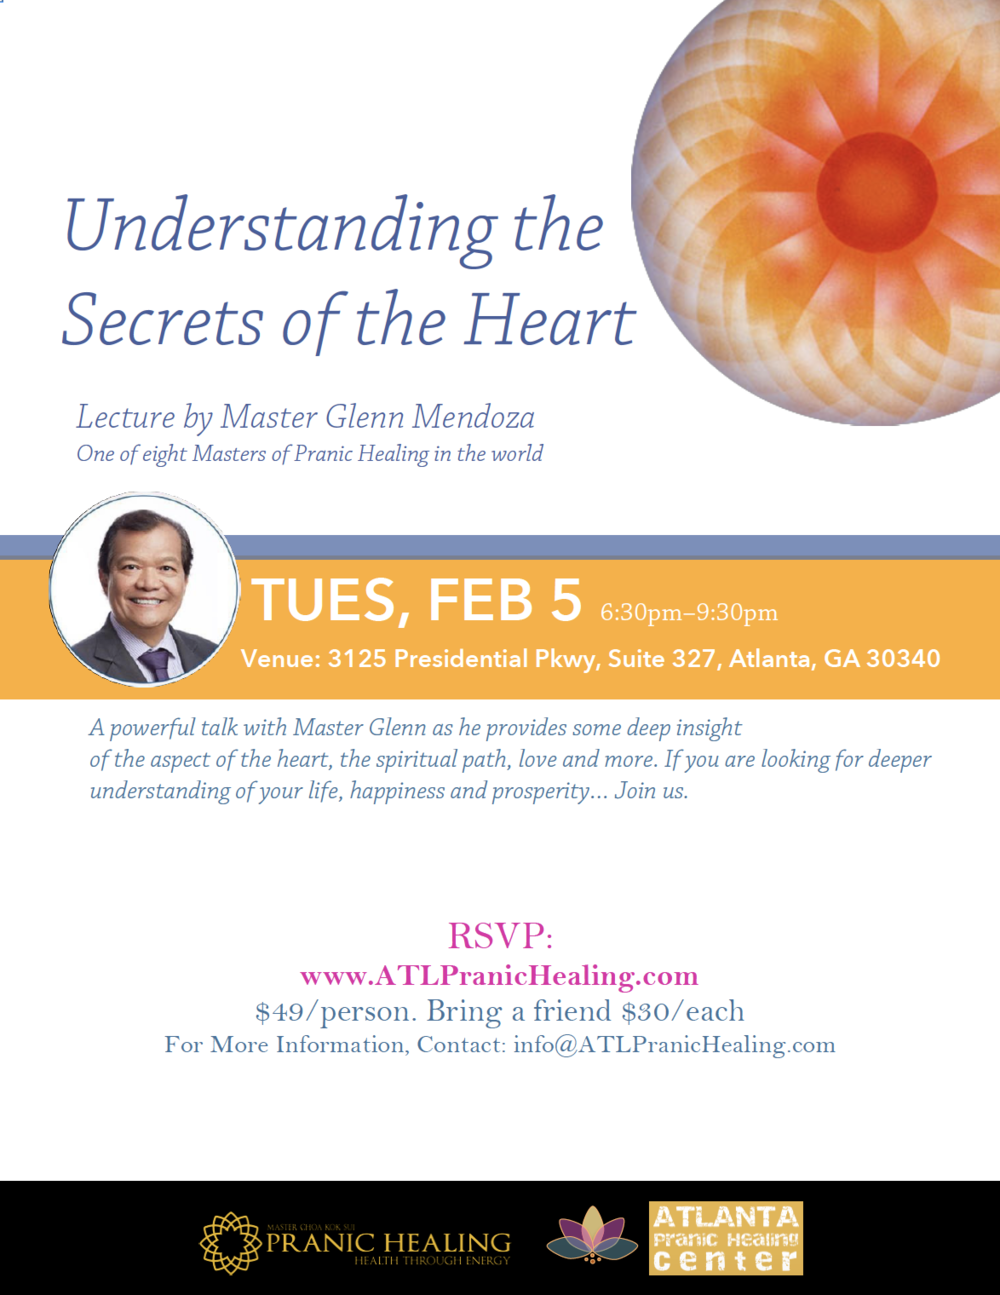 Understanding the Secrets of the Heart - Tuesday, February 5   |  6:30pm - 9:30pmA Special Lecture by Master Glenn Mendoza, One of eight Masters of Pranic Healing in the world